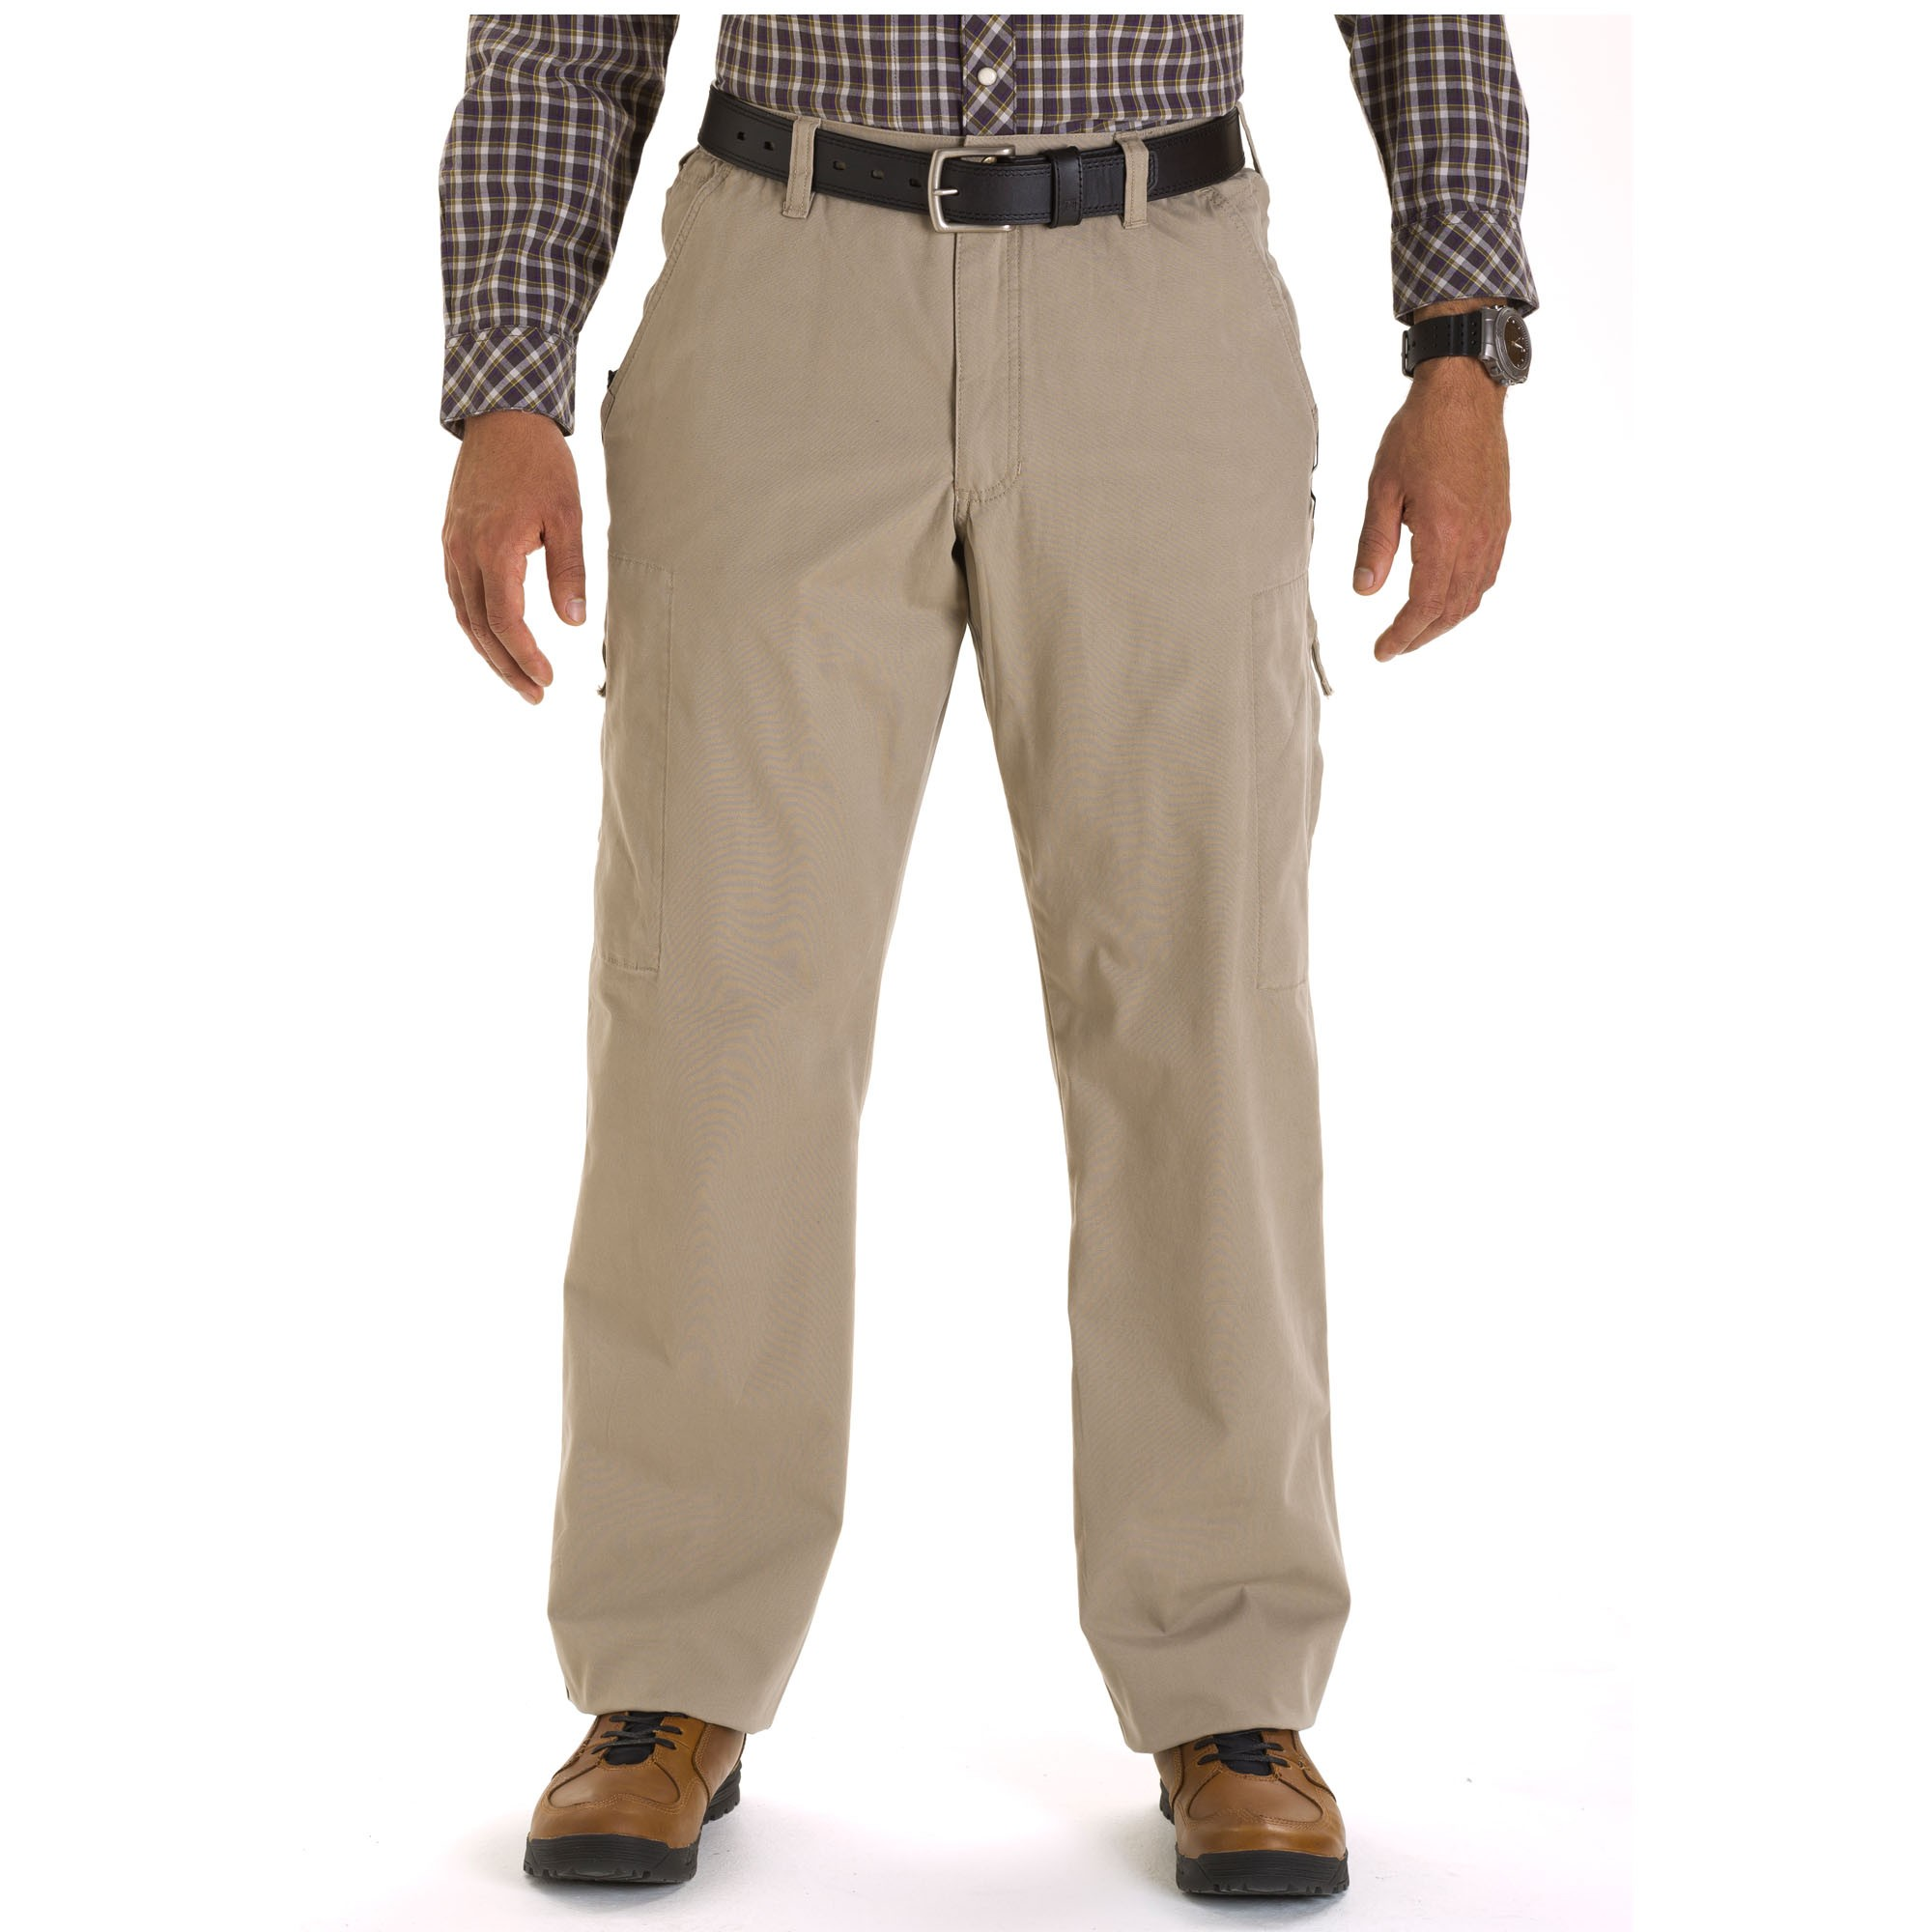 5.11 Covert Cargo Pants | Republic Outdoor Equipment